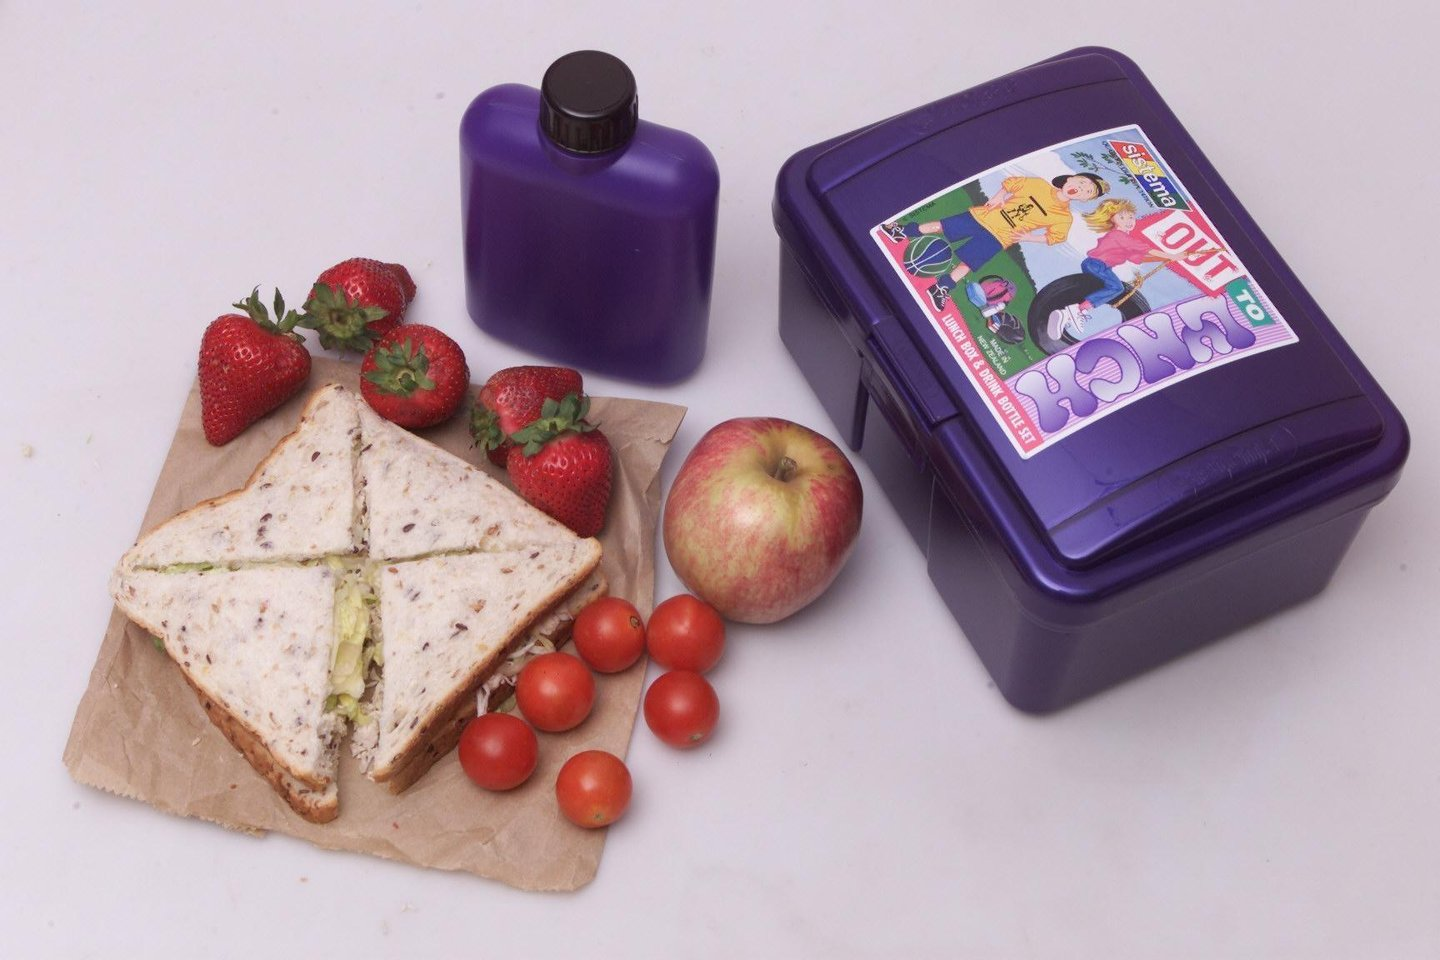 (AUSTRALIA & NEW ZEALAND OUT) A healthy school lunch, 1 February 2002. SMH Picture by DALLAS KILPONEN (Photo by Fairfax Media/Fairfax Media via Getty Images)